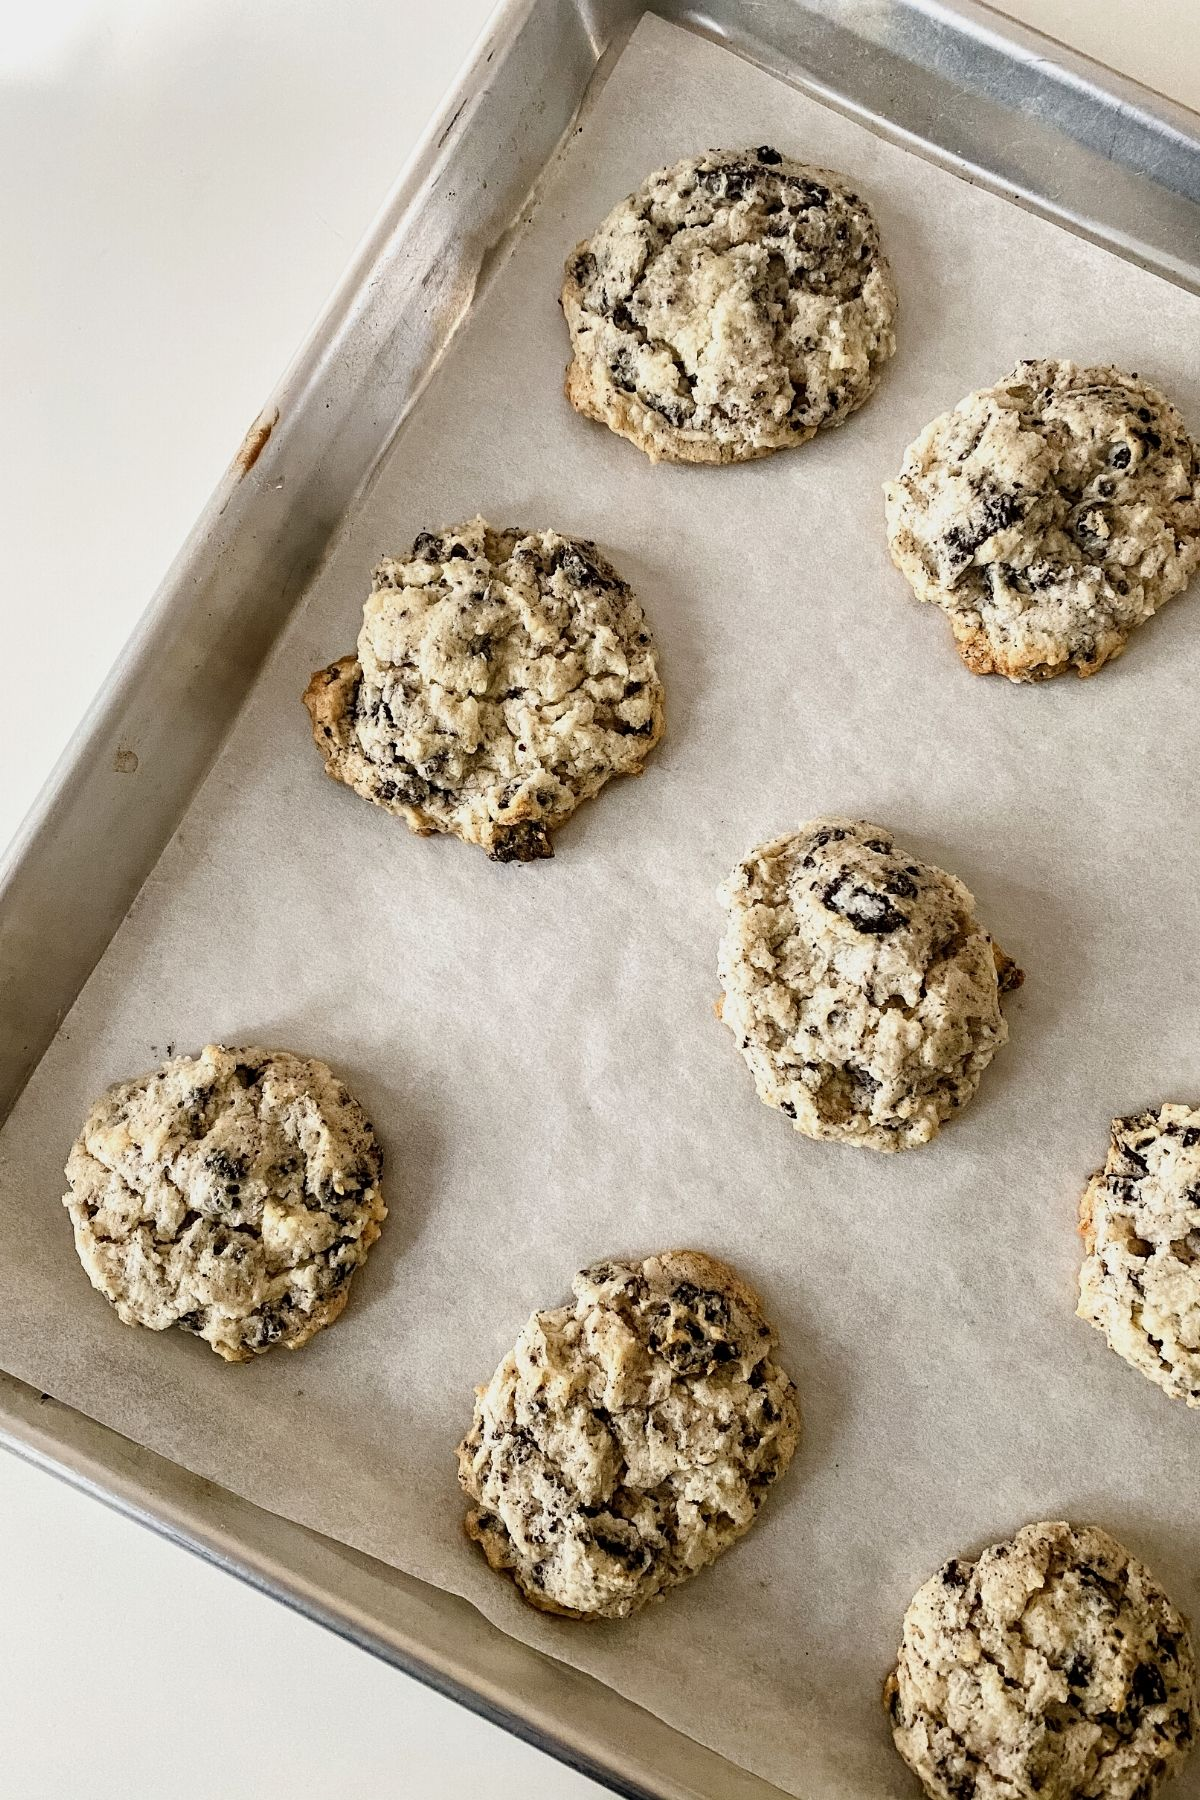 Baked cookies and cream cookies on baking sheet